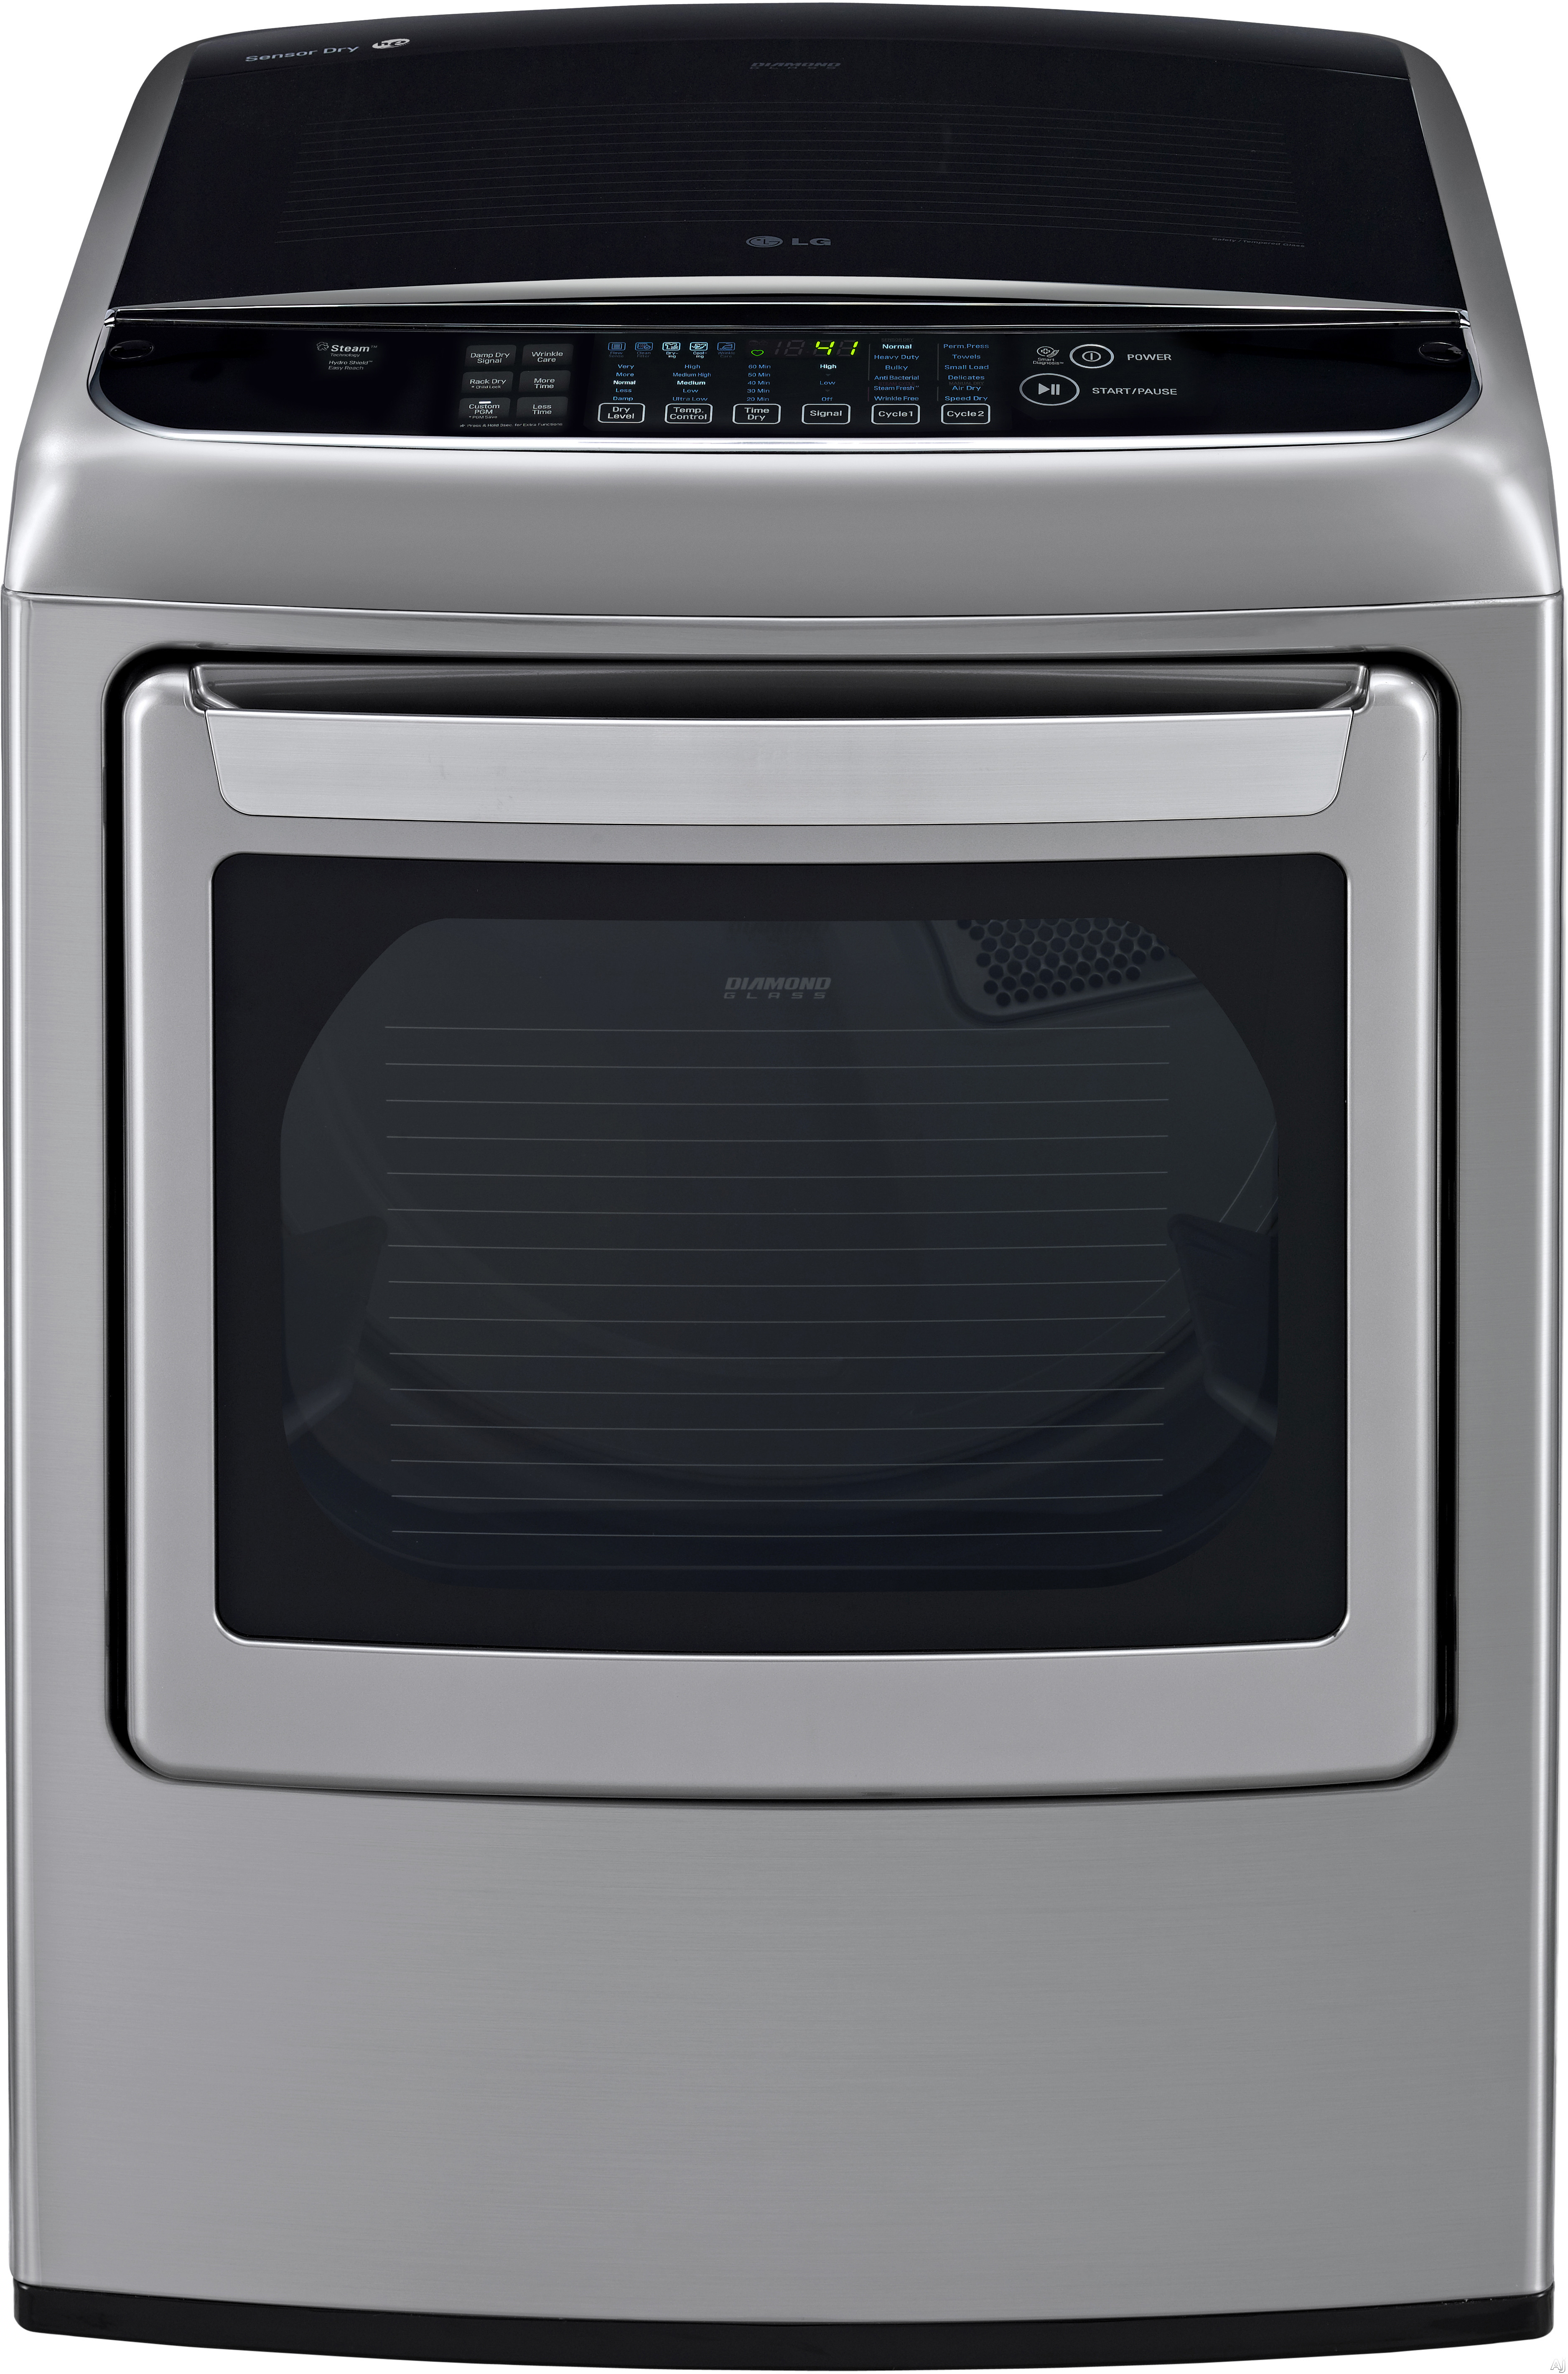 LG SteamDryer Series DLEY1701VE 27 Inch 7.4 cu. ft. Electric Dryer with 12 Dry Programs Steam EasyLoad Door Wrinkle Free Program Speed Dry Smart Diagnosis LoDecibel Quiet Operation Sensor Dry and ENER